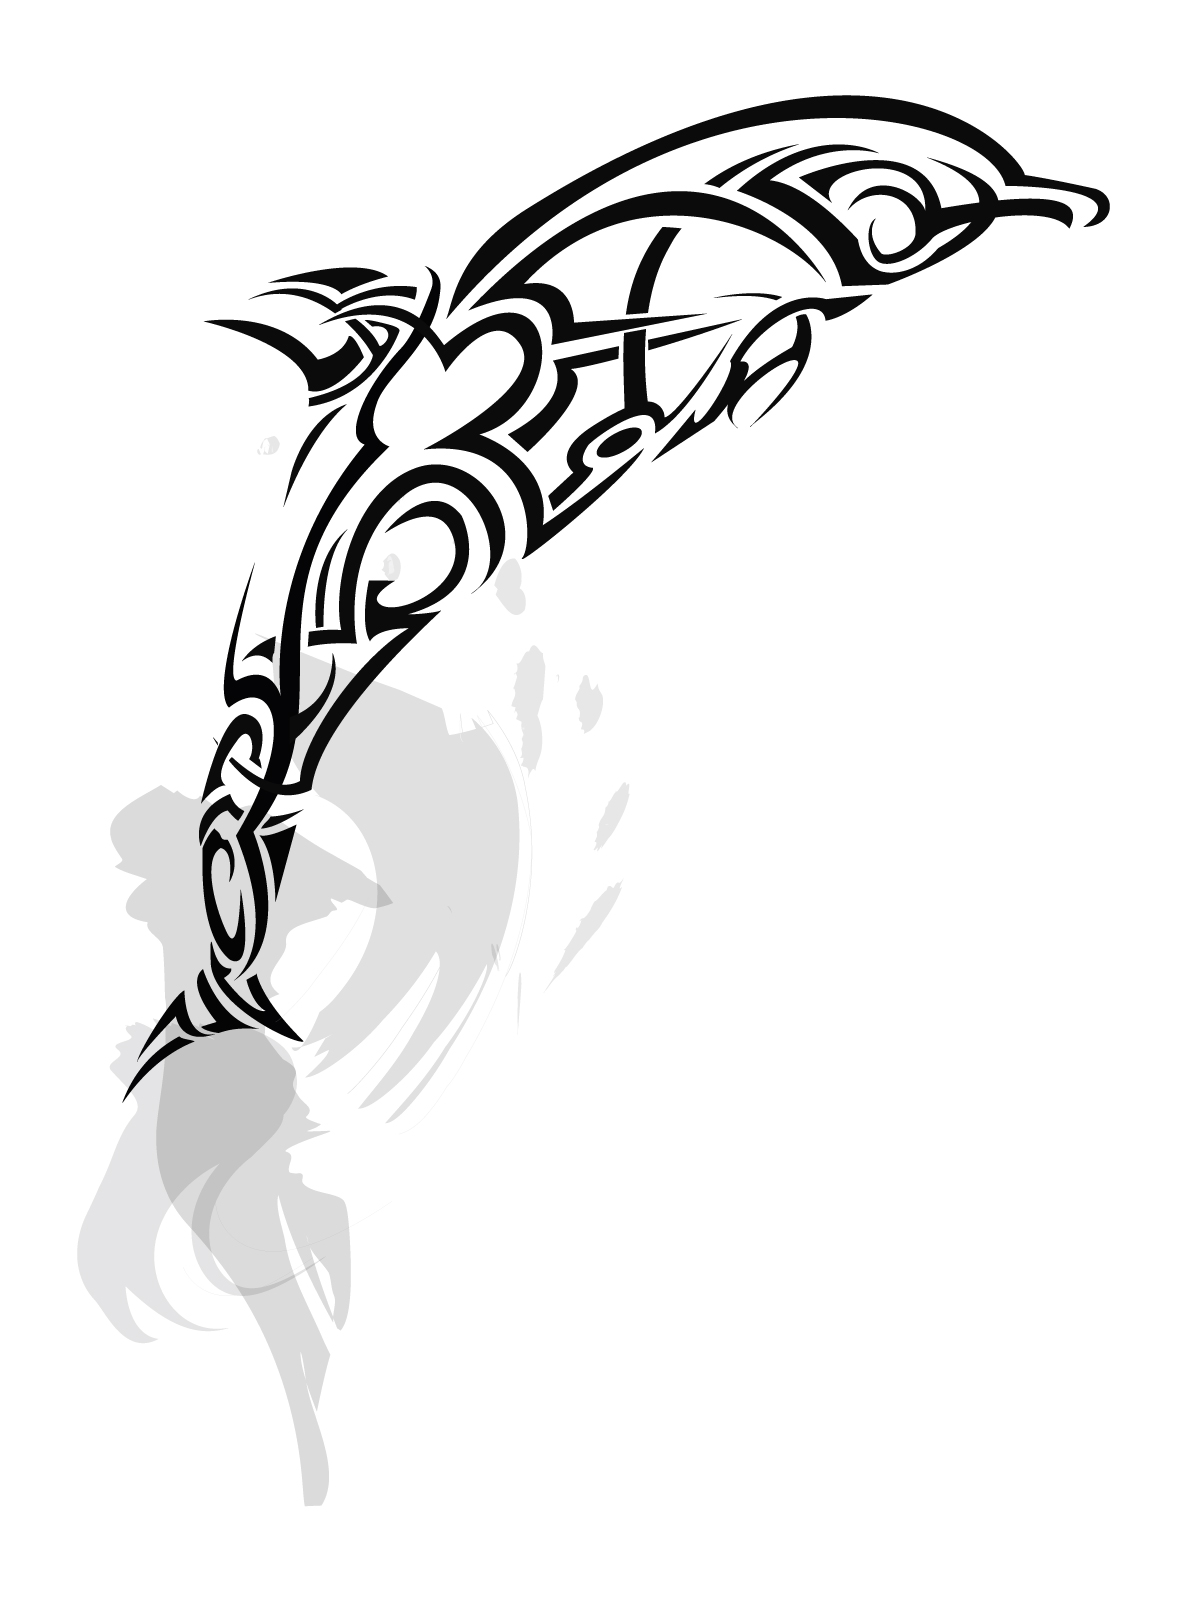 Dolphin Tattoos Designs, Ideas and Meaning | Tattoos For You | 1200 x 1600 jpeg 200kB